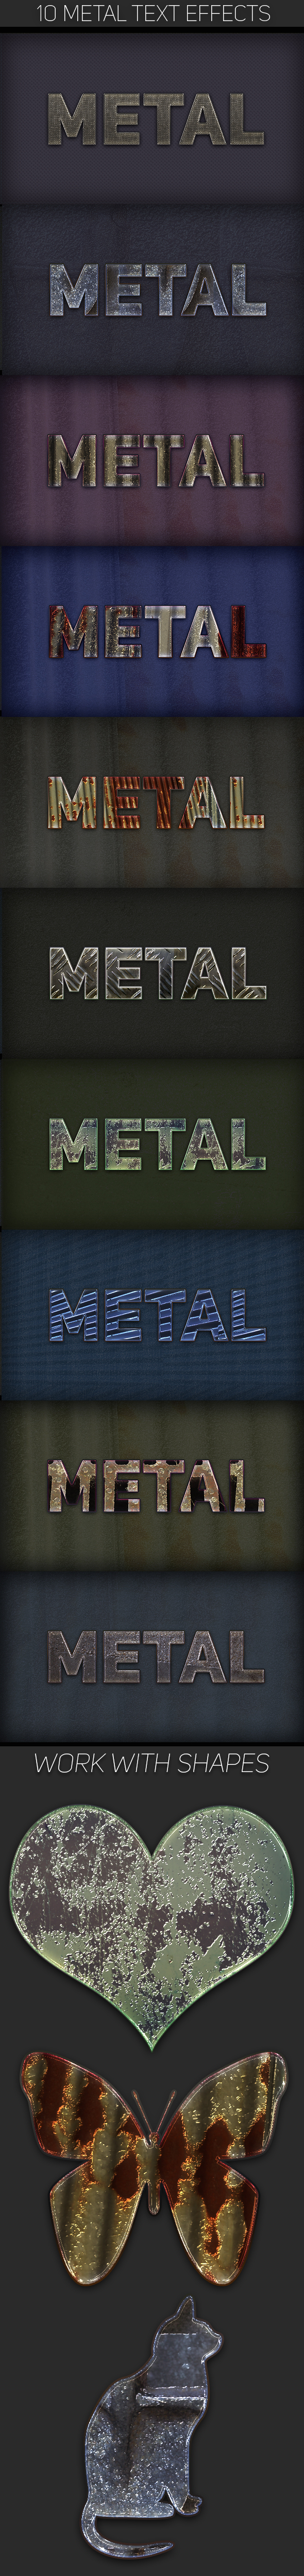 Metal Text Effects - Text Effects Styles